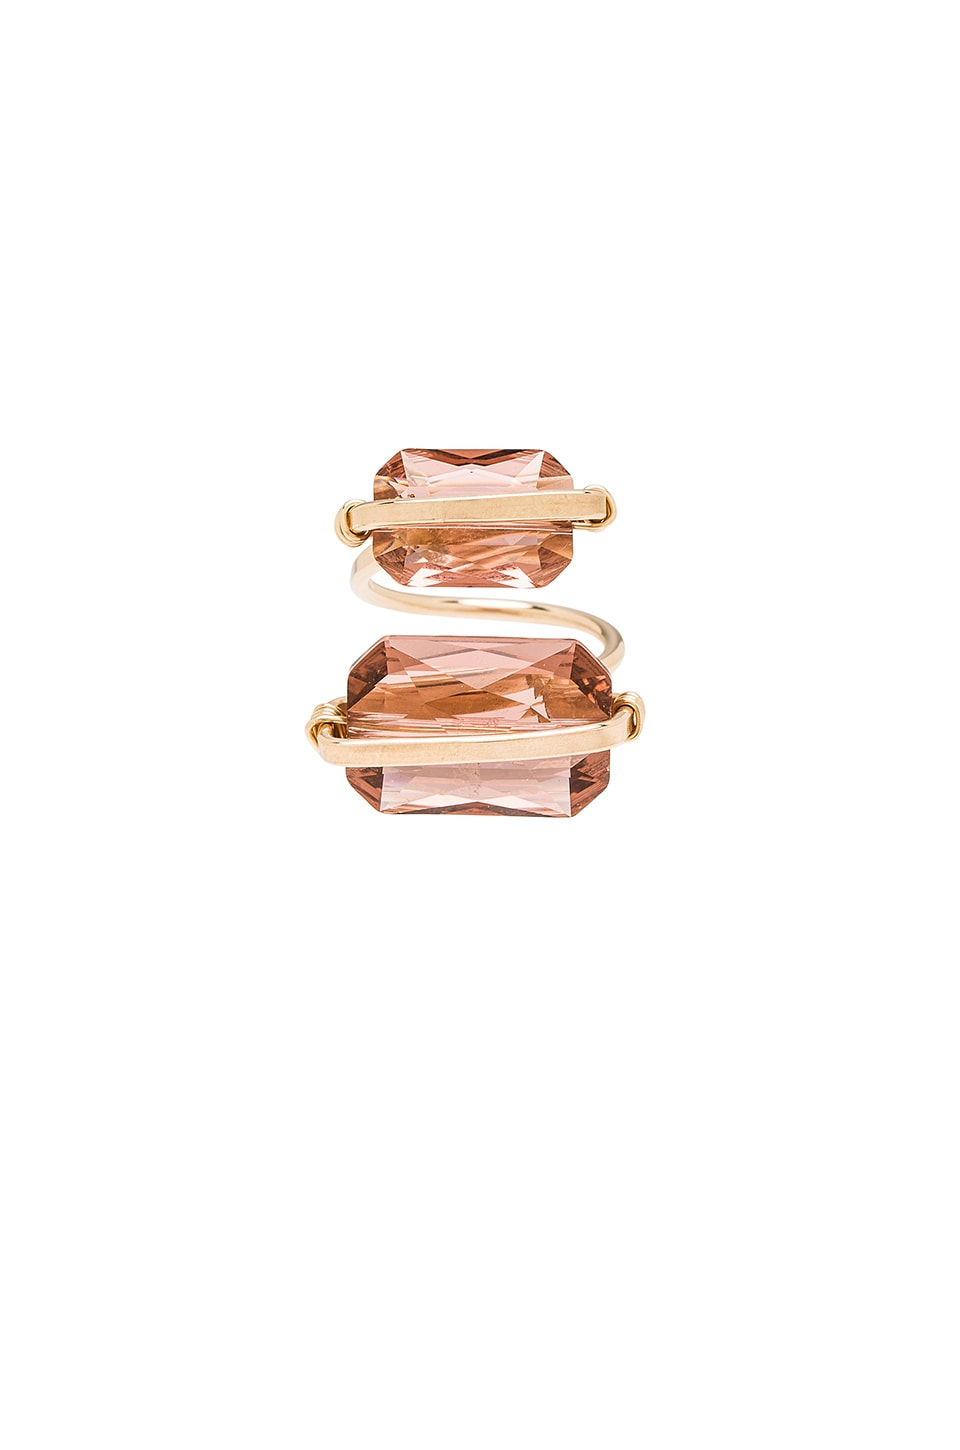 Mimi & Lu Peyton Ring in Blush Rose & Gold